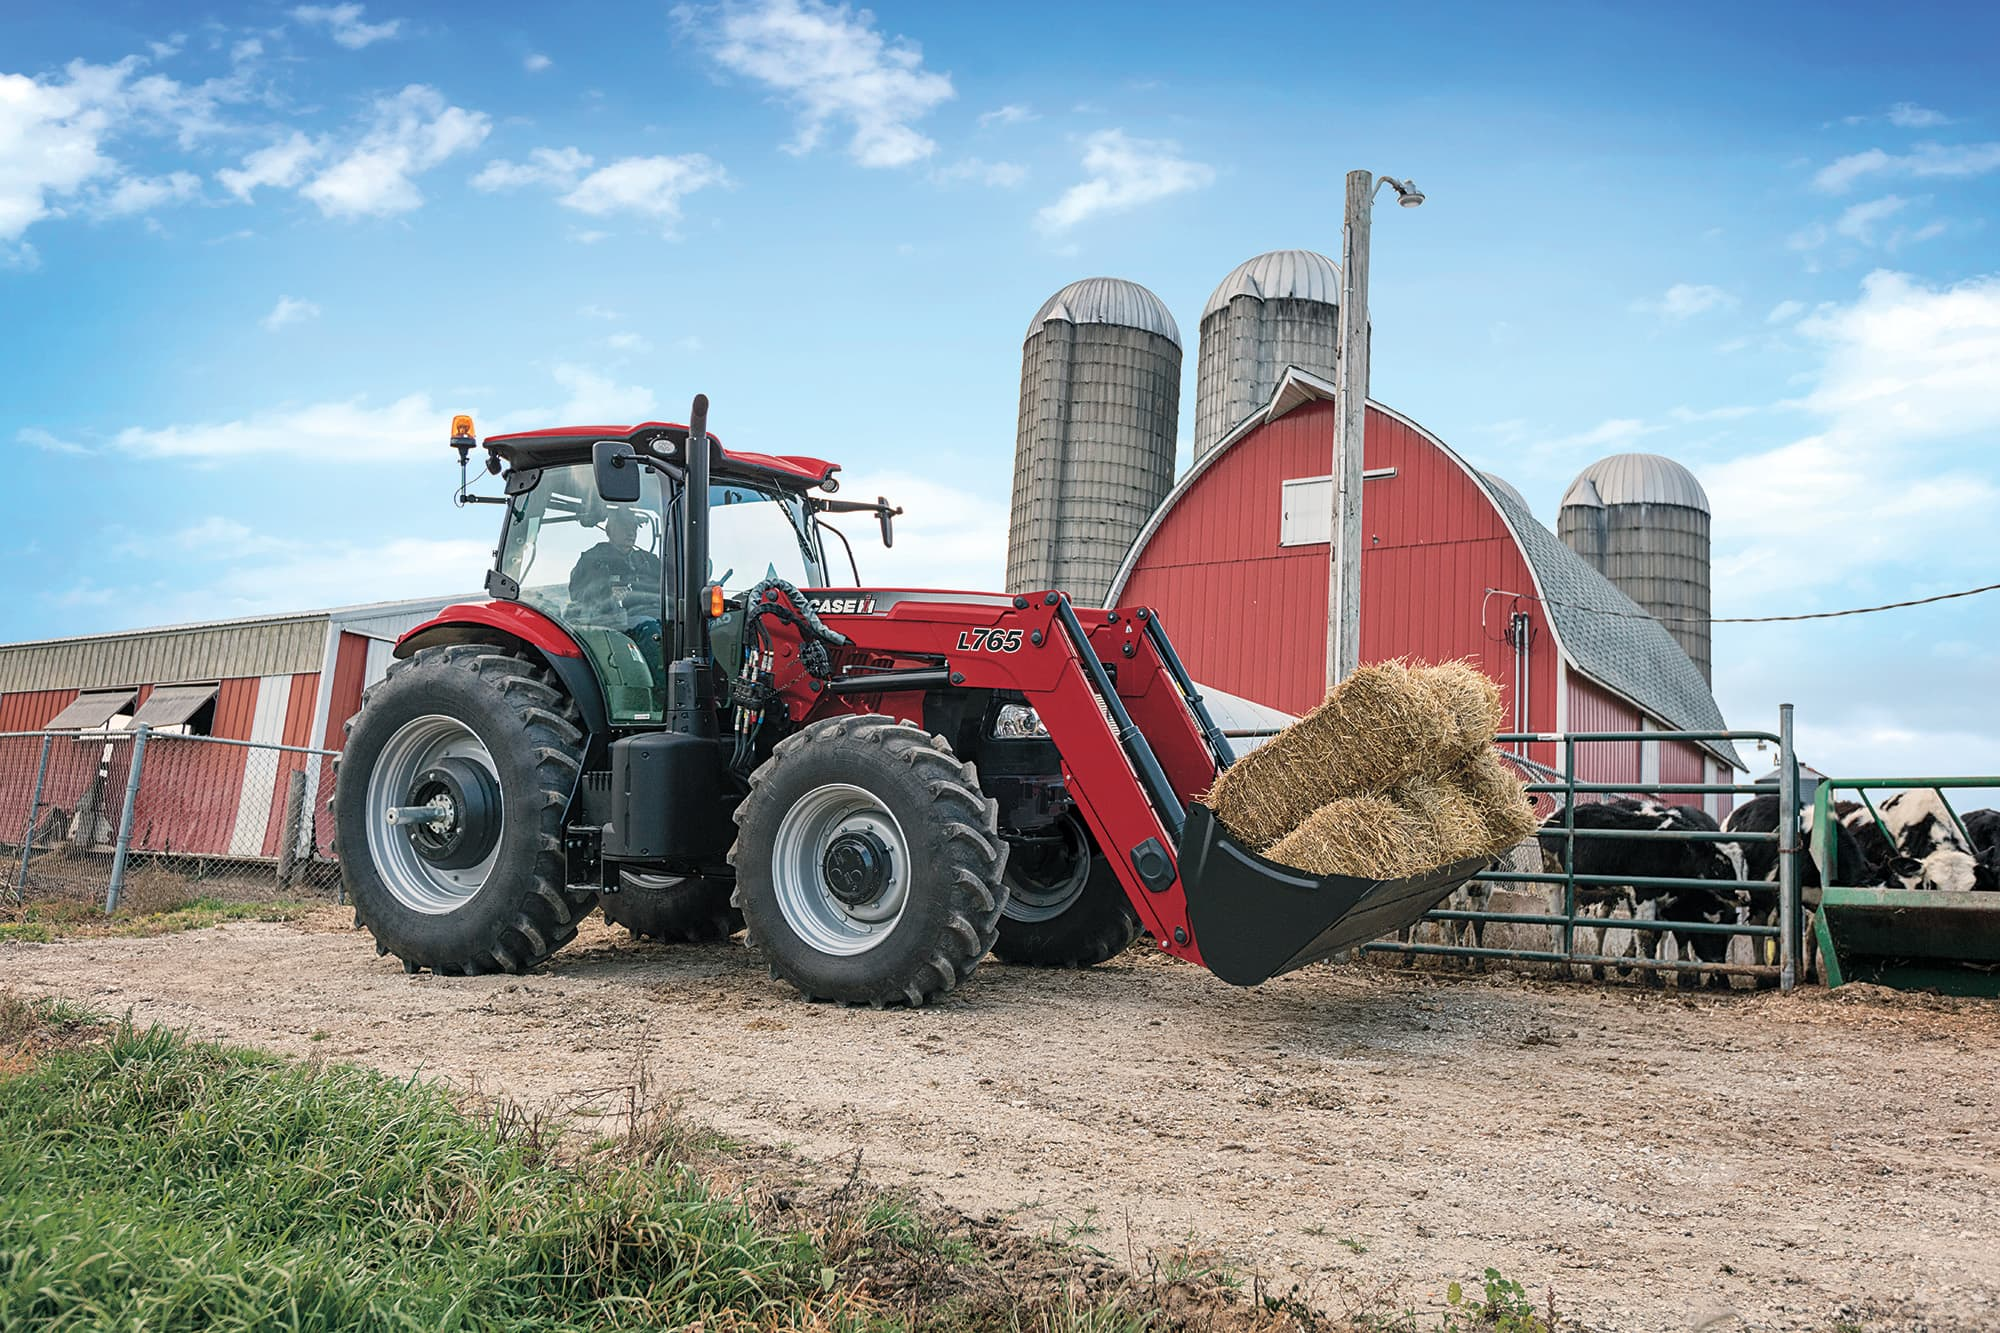 Power, Performance, and Versatility in a Mid-Size Tractor